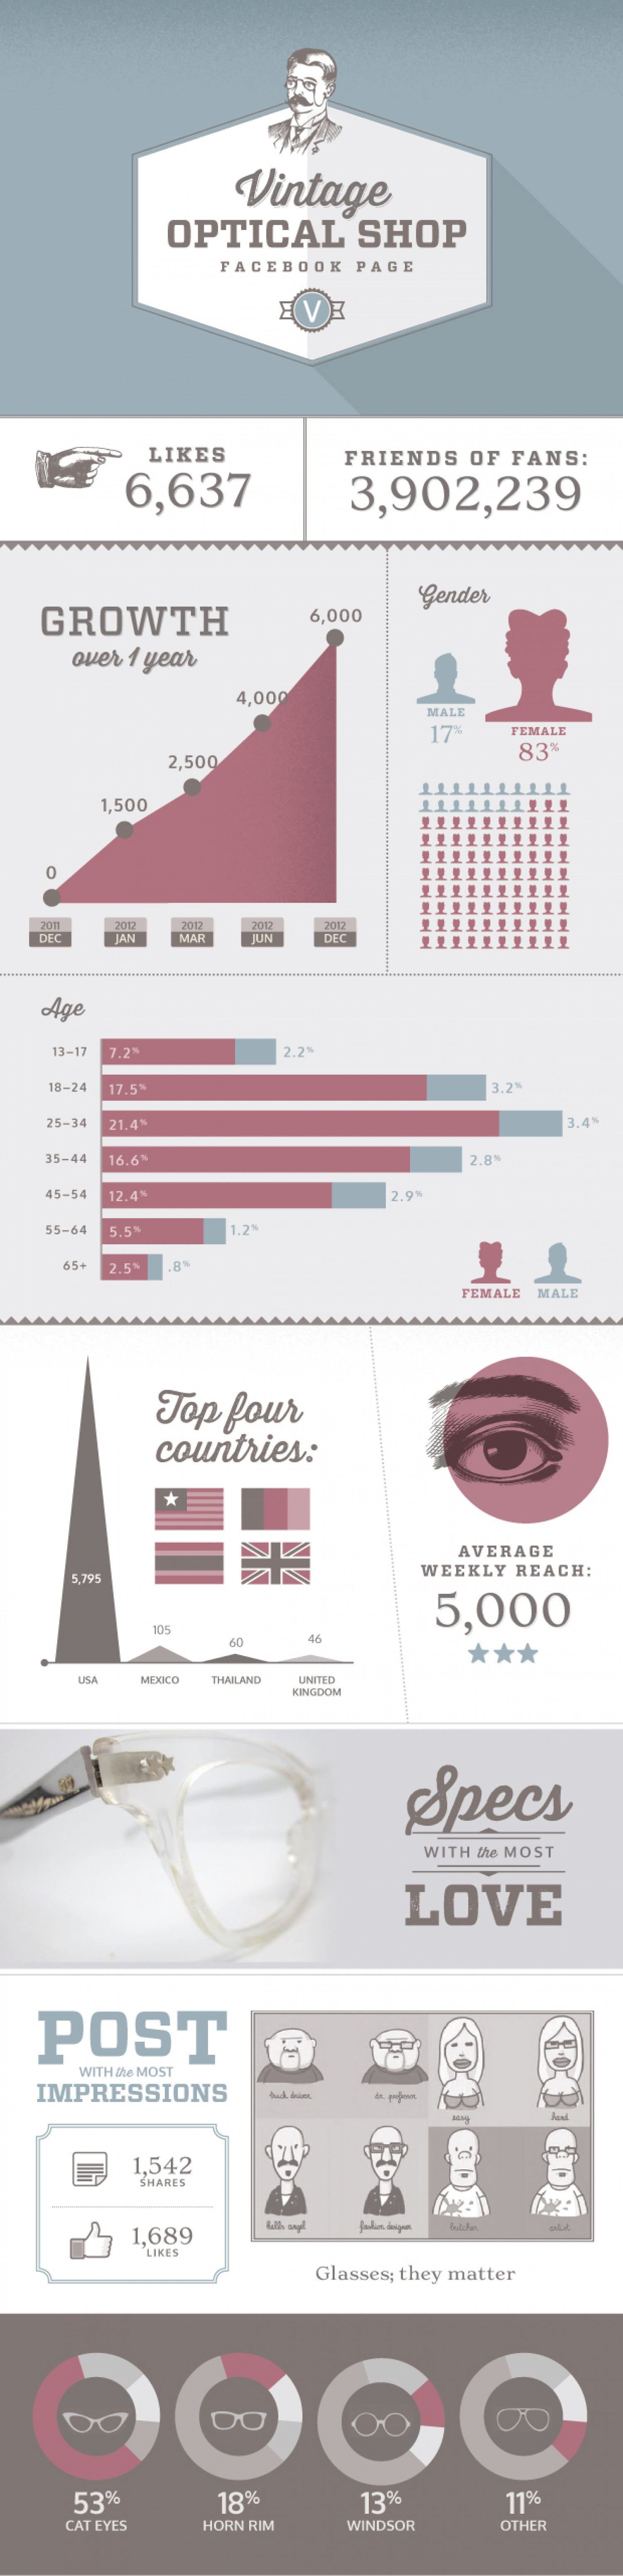 Vintage Optical Shop Infographic